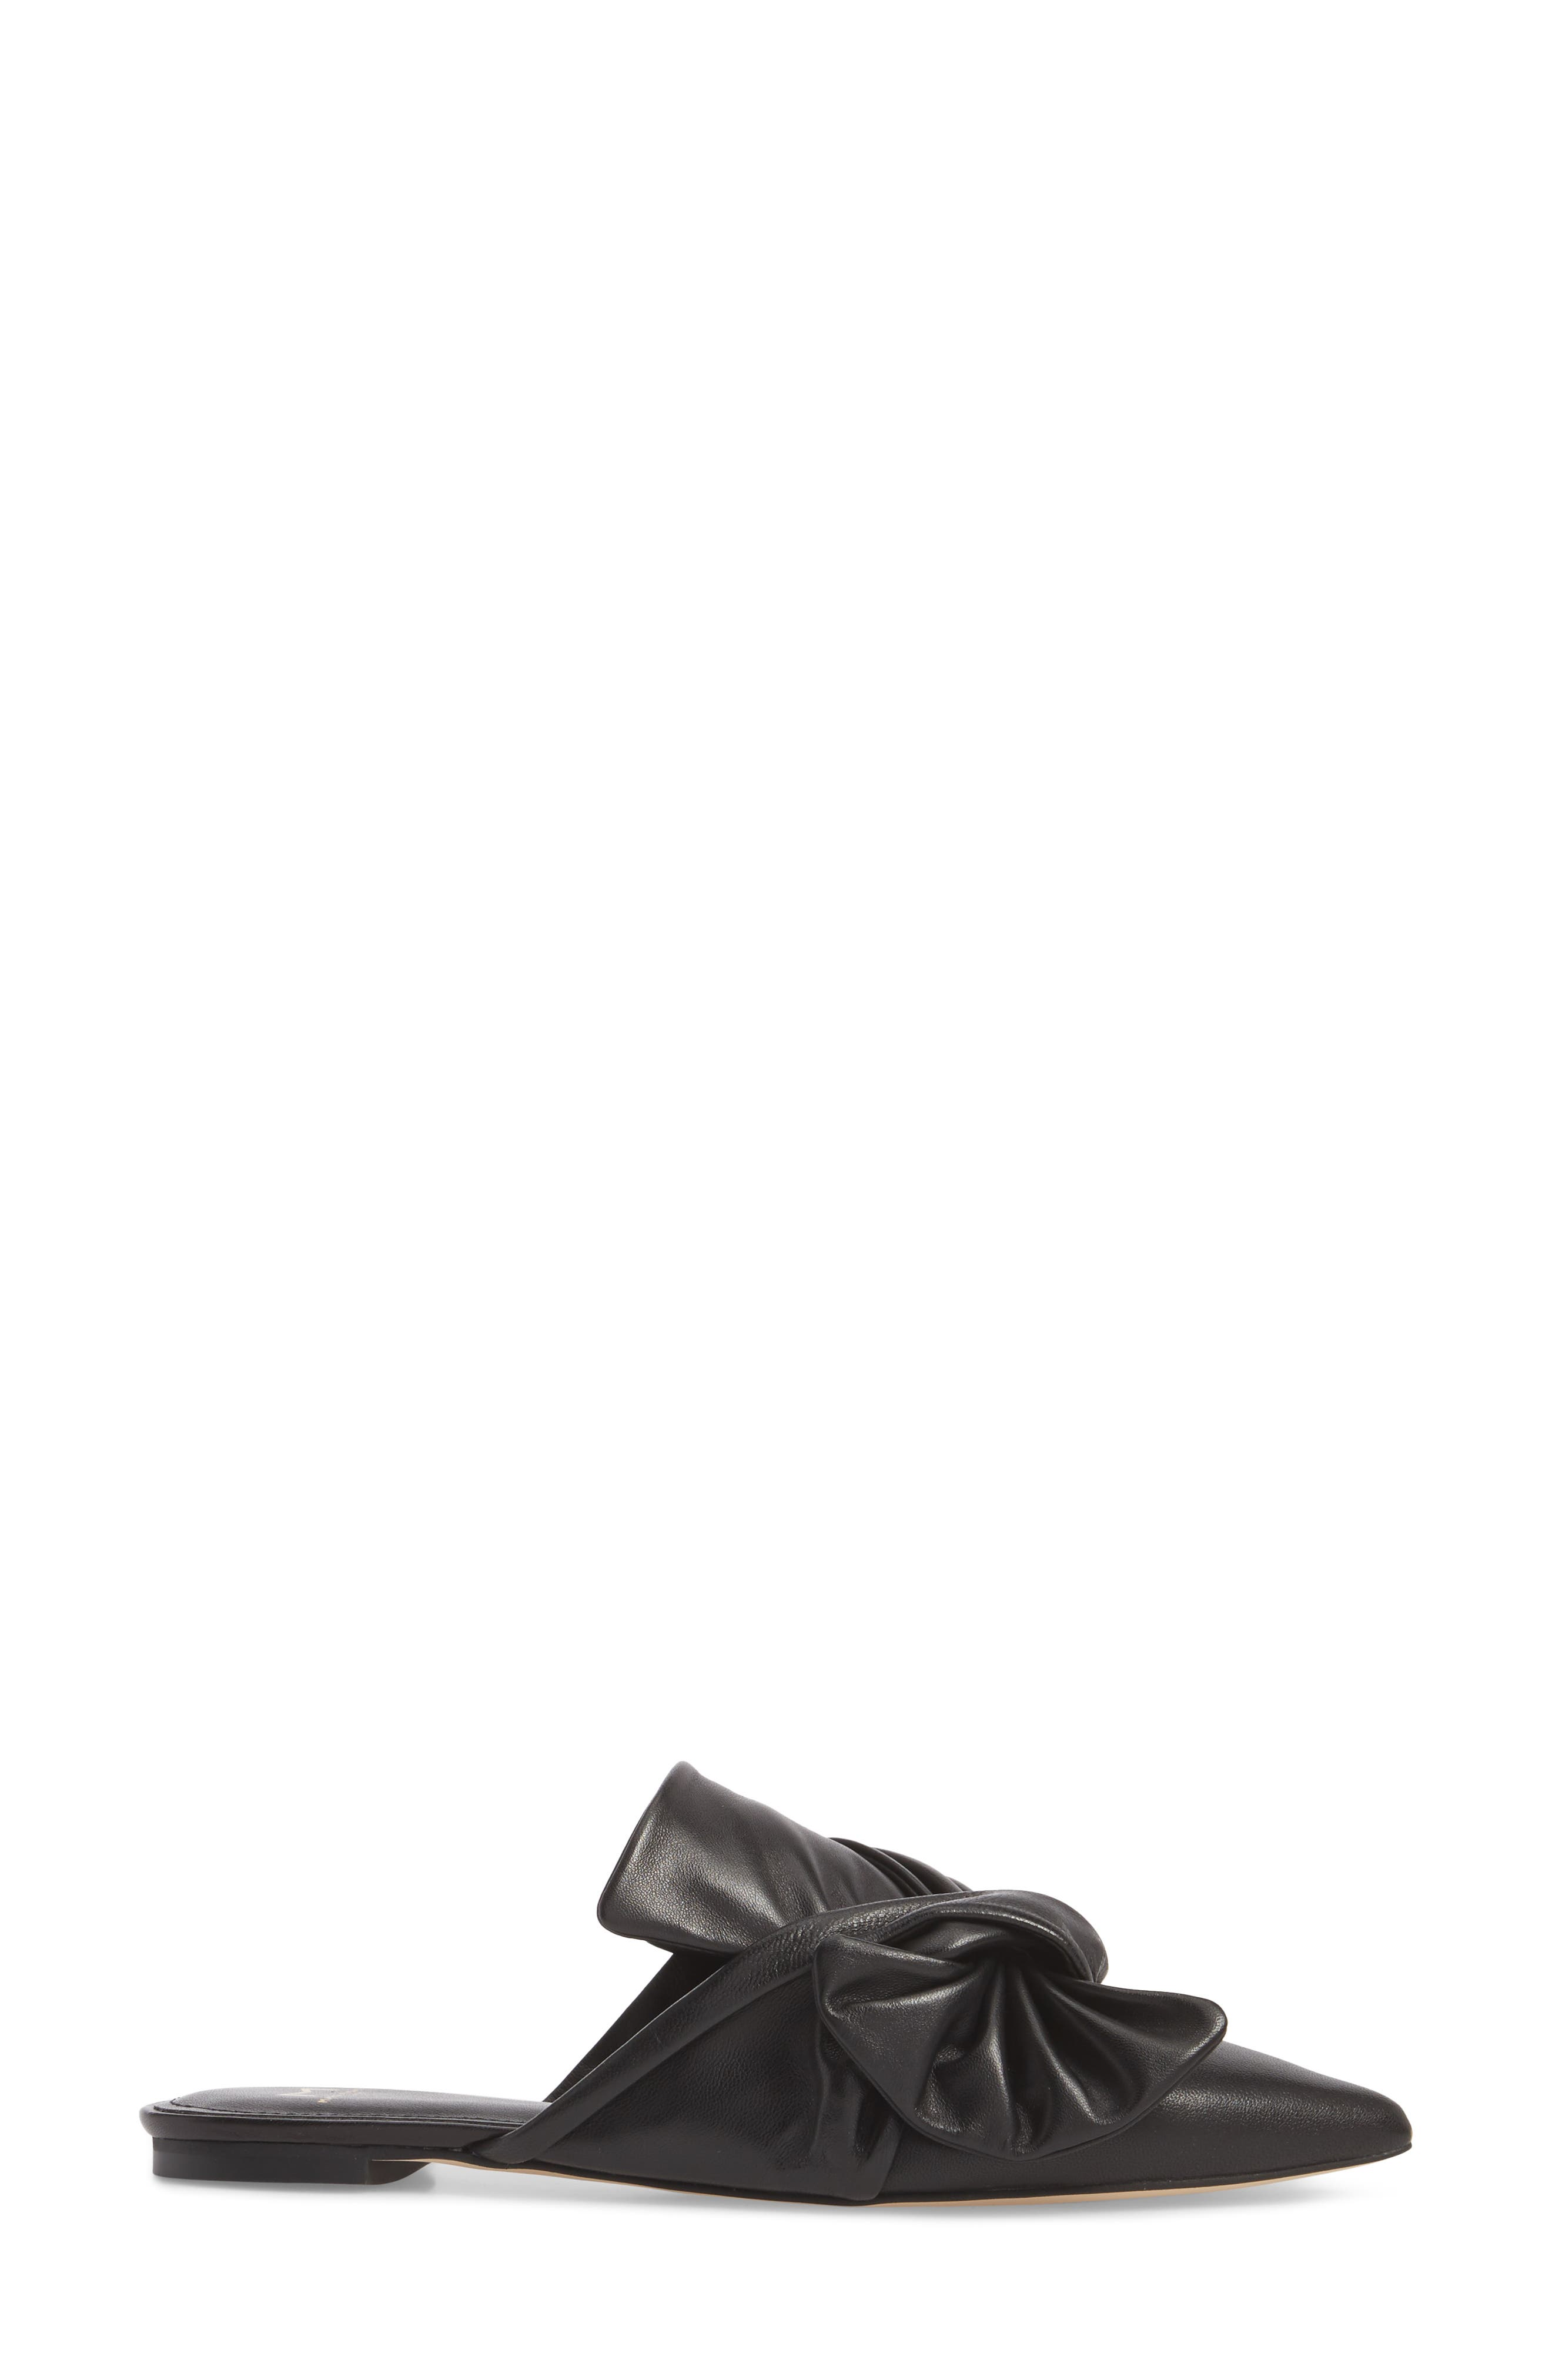 Shafi Pointy Toe Slide,                             Alternate thumbnail 3, color,                             Black Leather